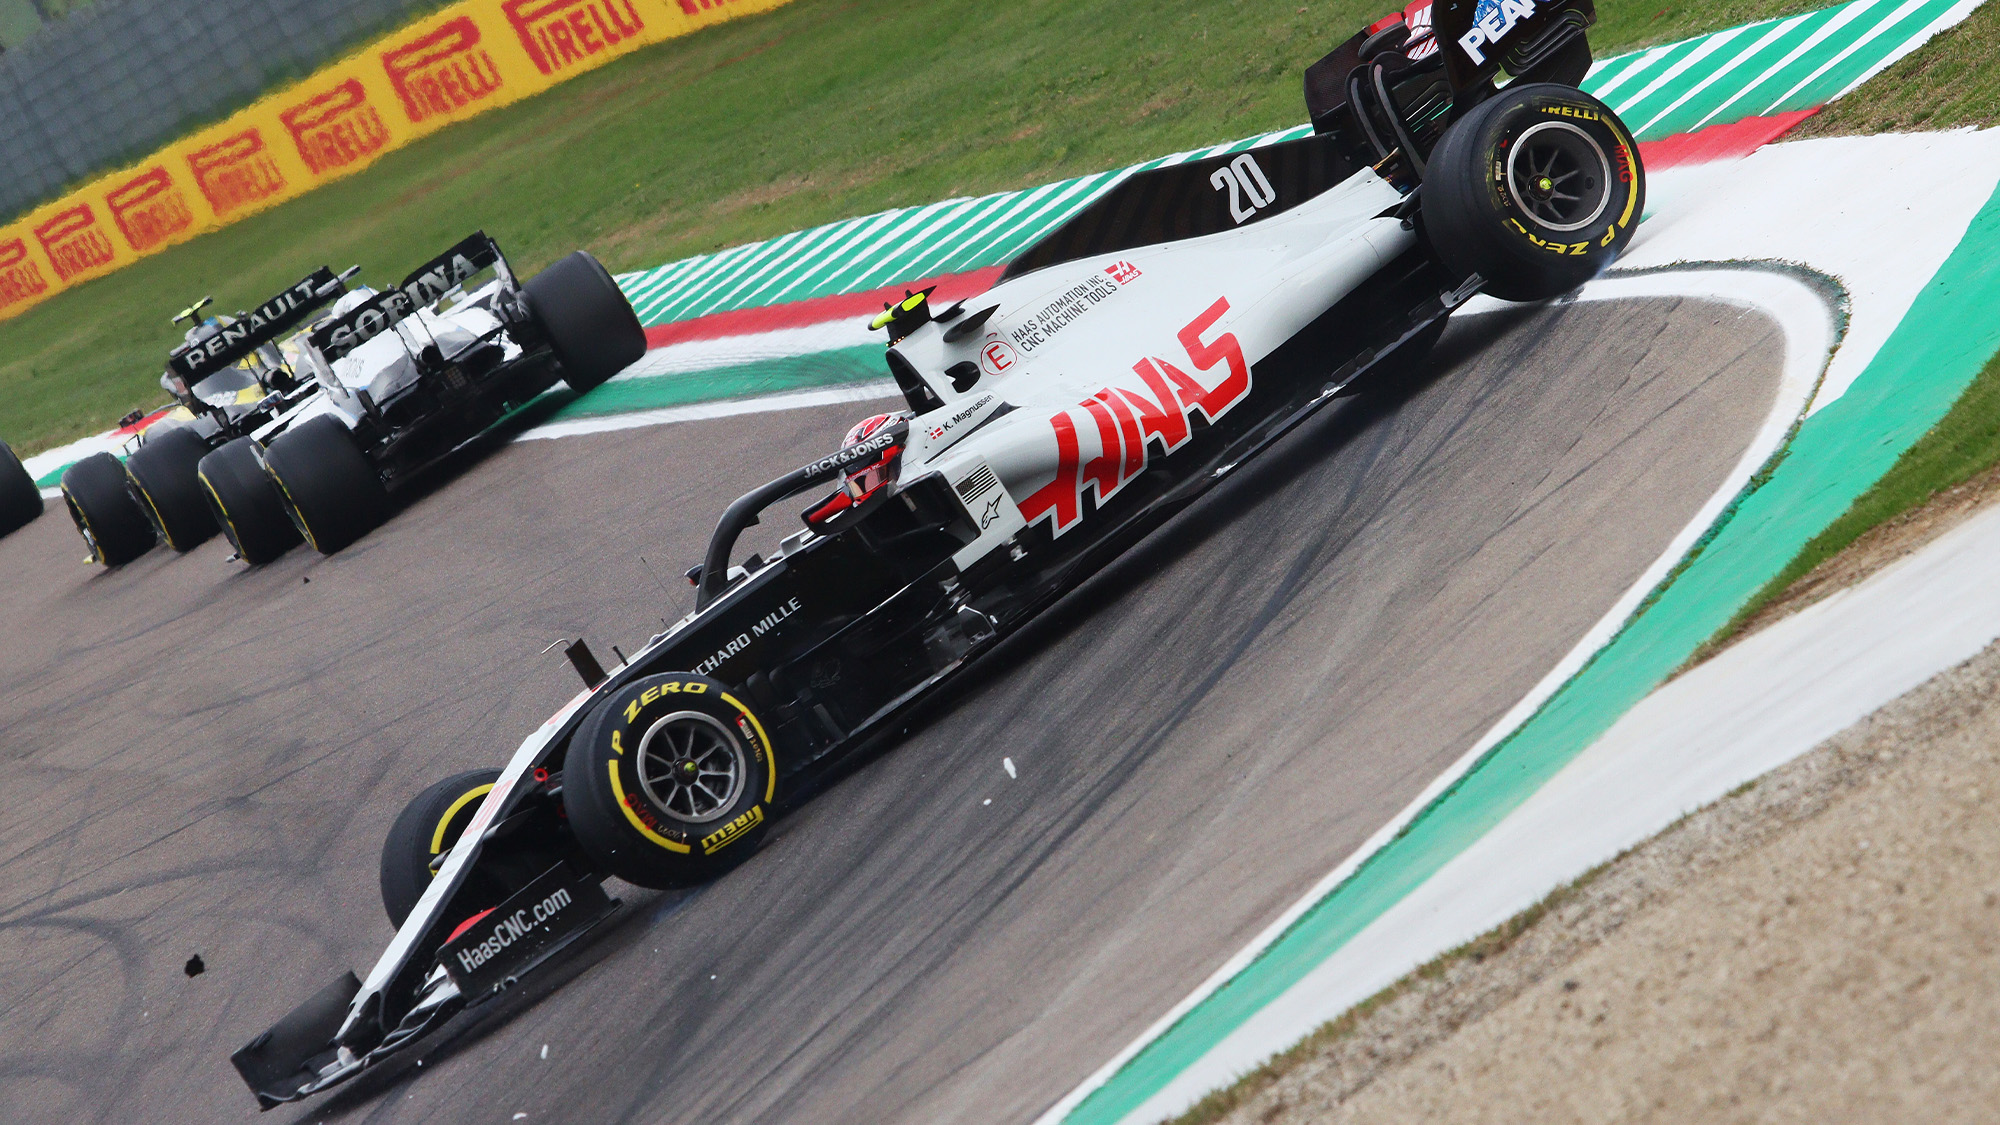 Kevin Magnussen spins on the opening lap of the 2020 F1 Emilia Romagna Grand Prix at Imola